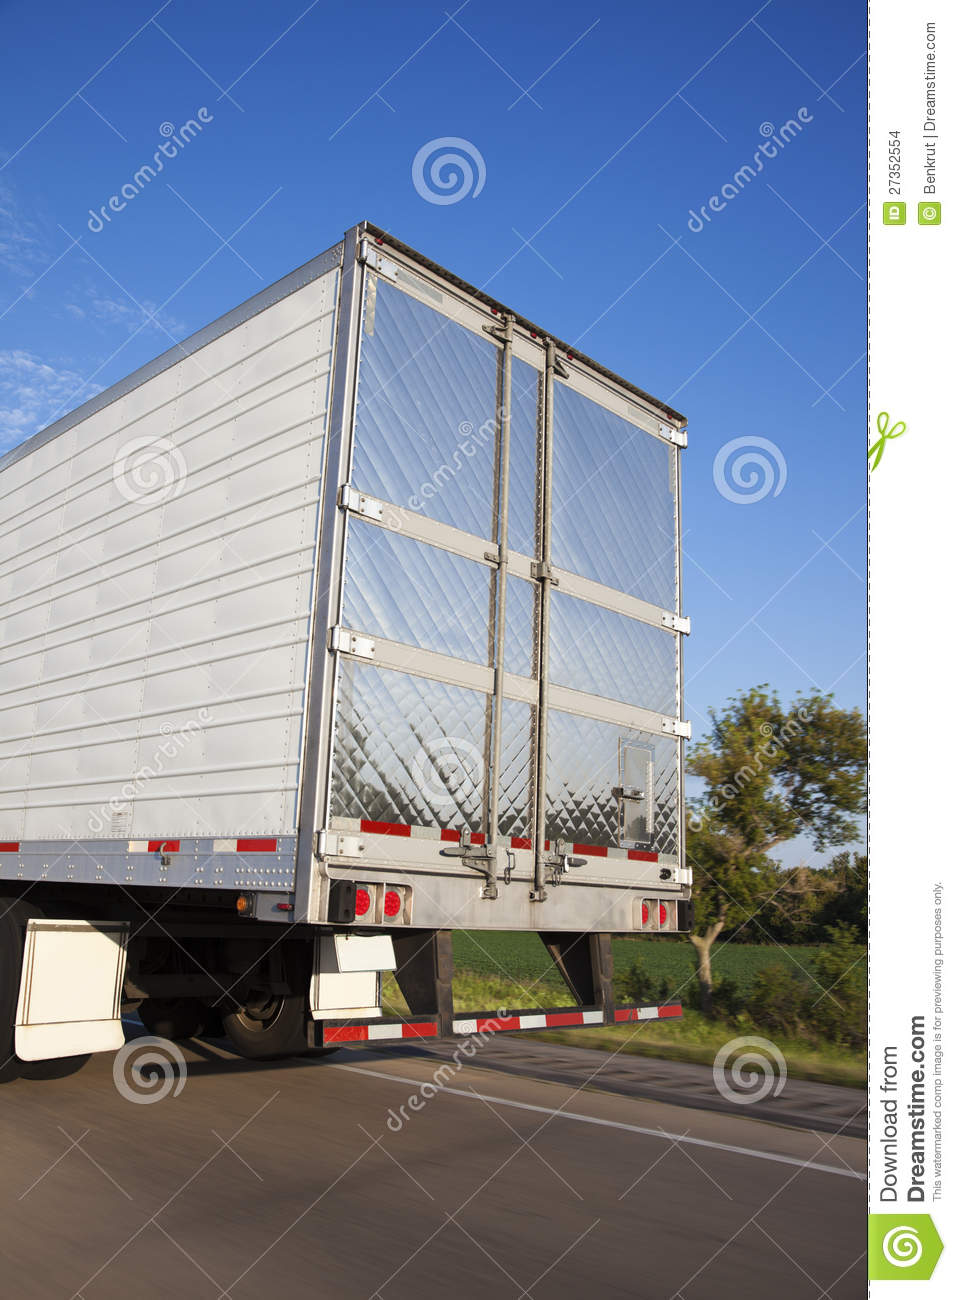 Back Of The Semi Truck Stock Images - Image: 27352554